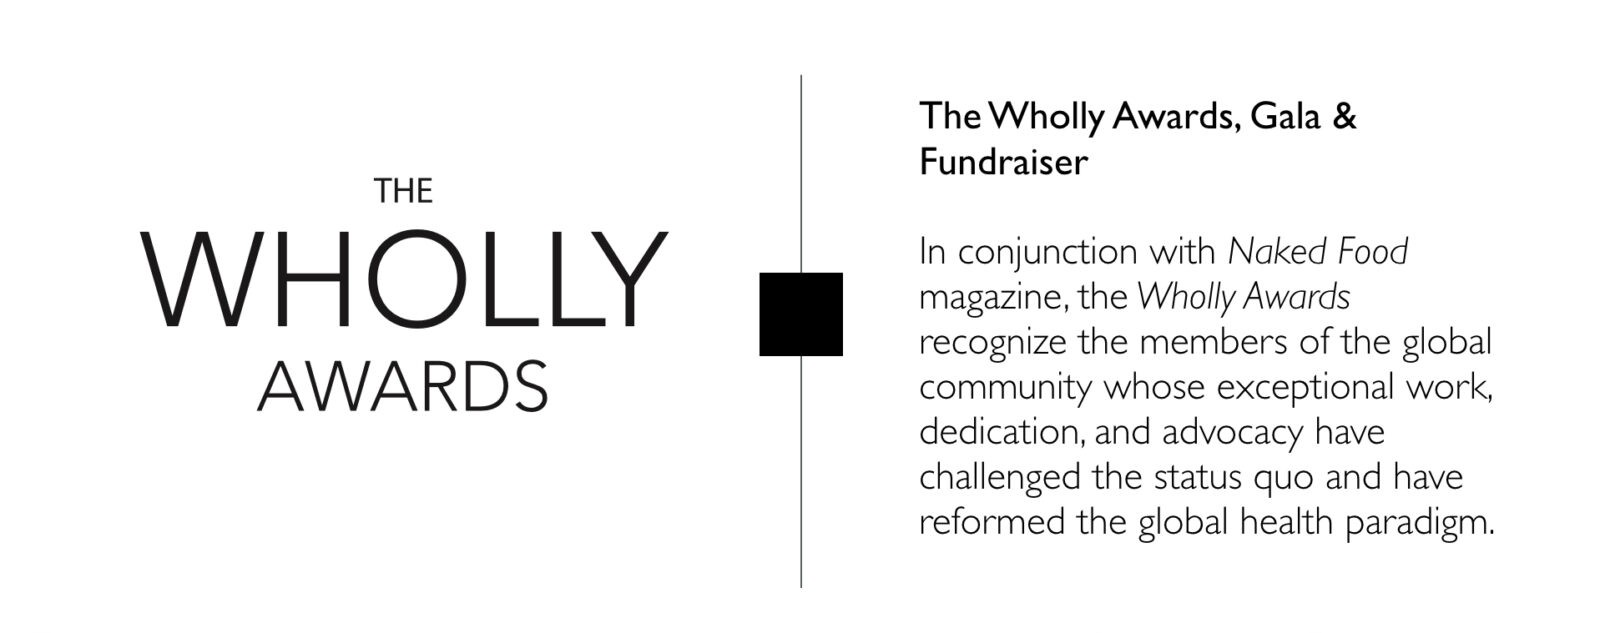 WFPB.ORG | Wholly Awards